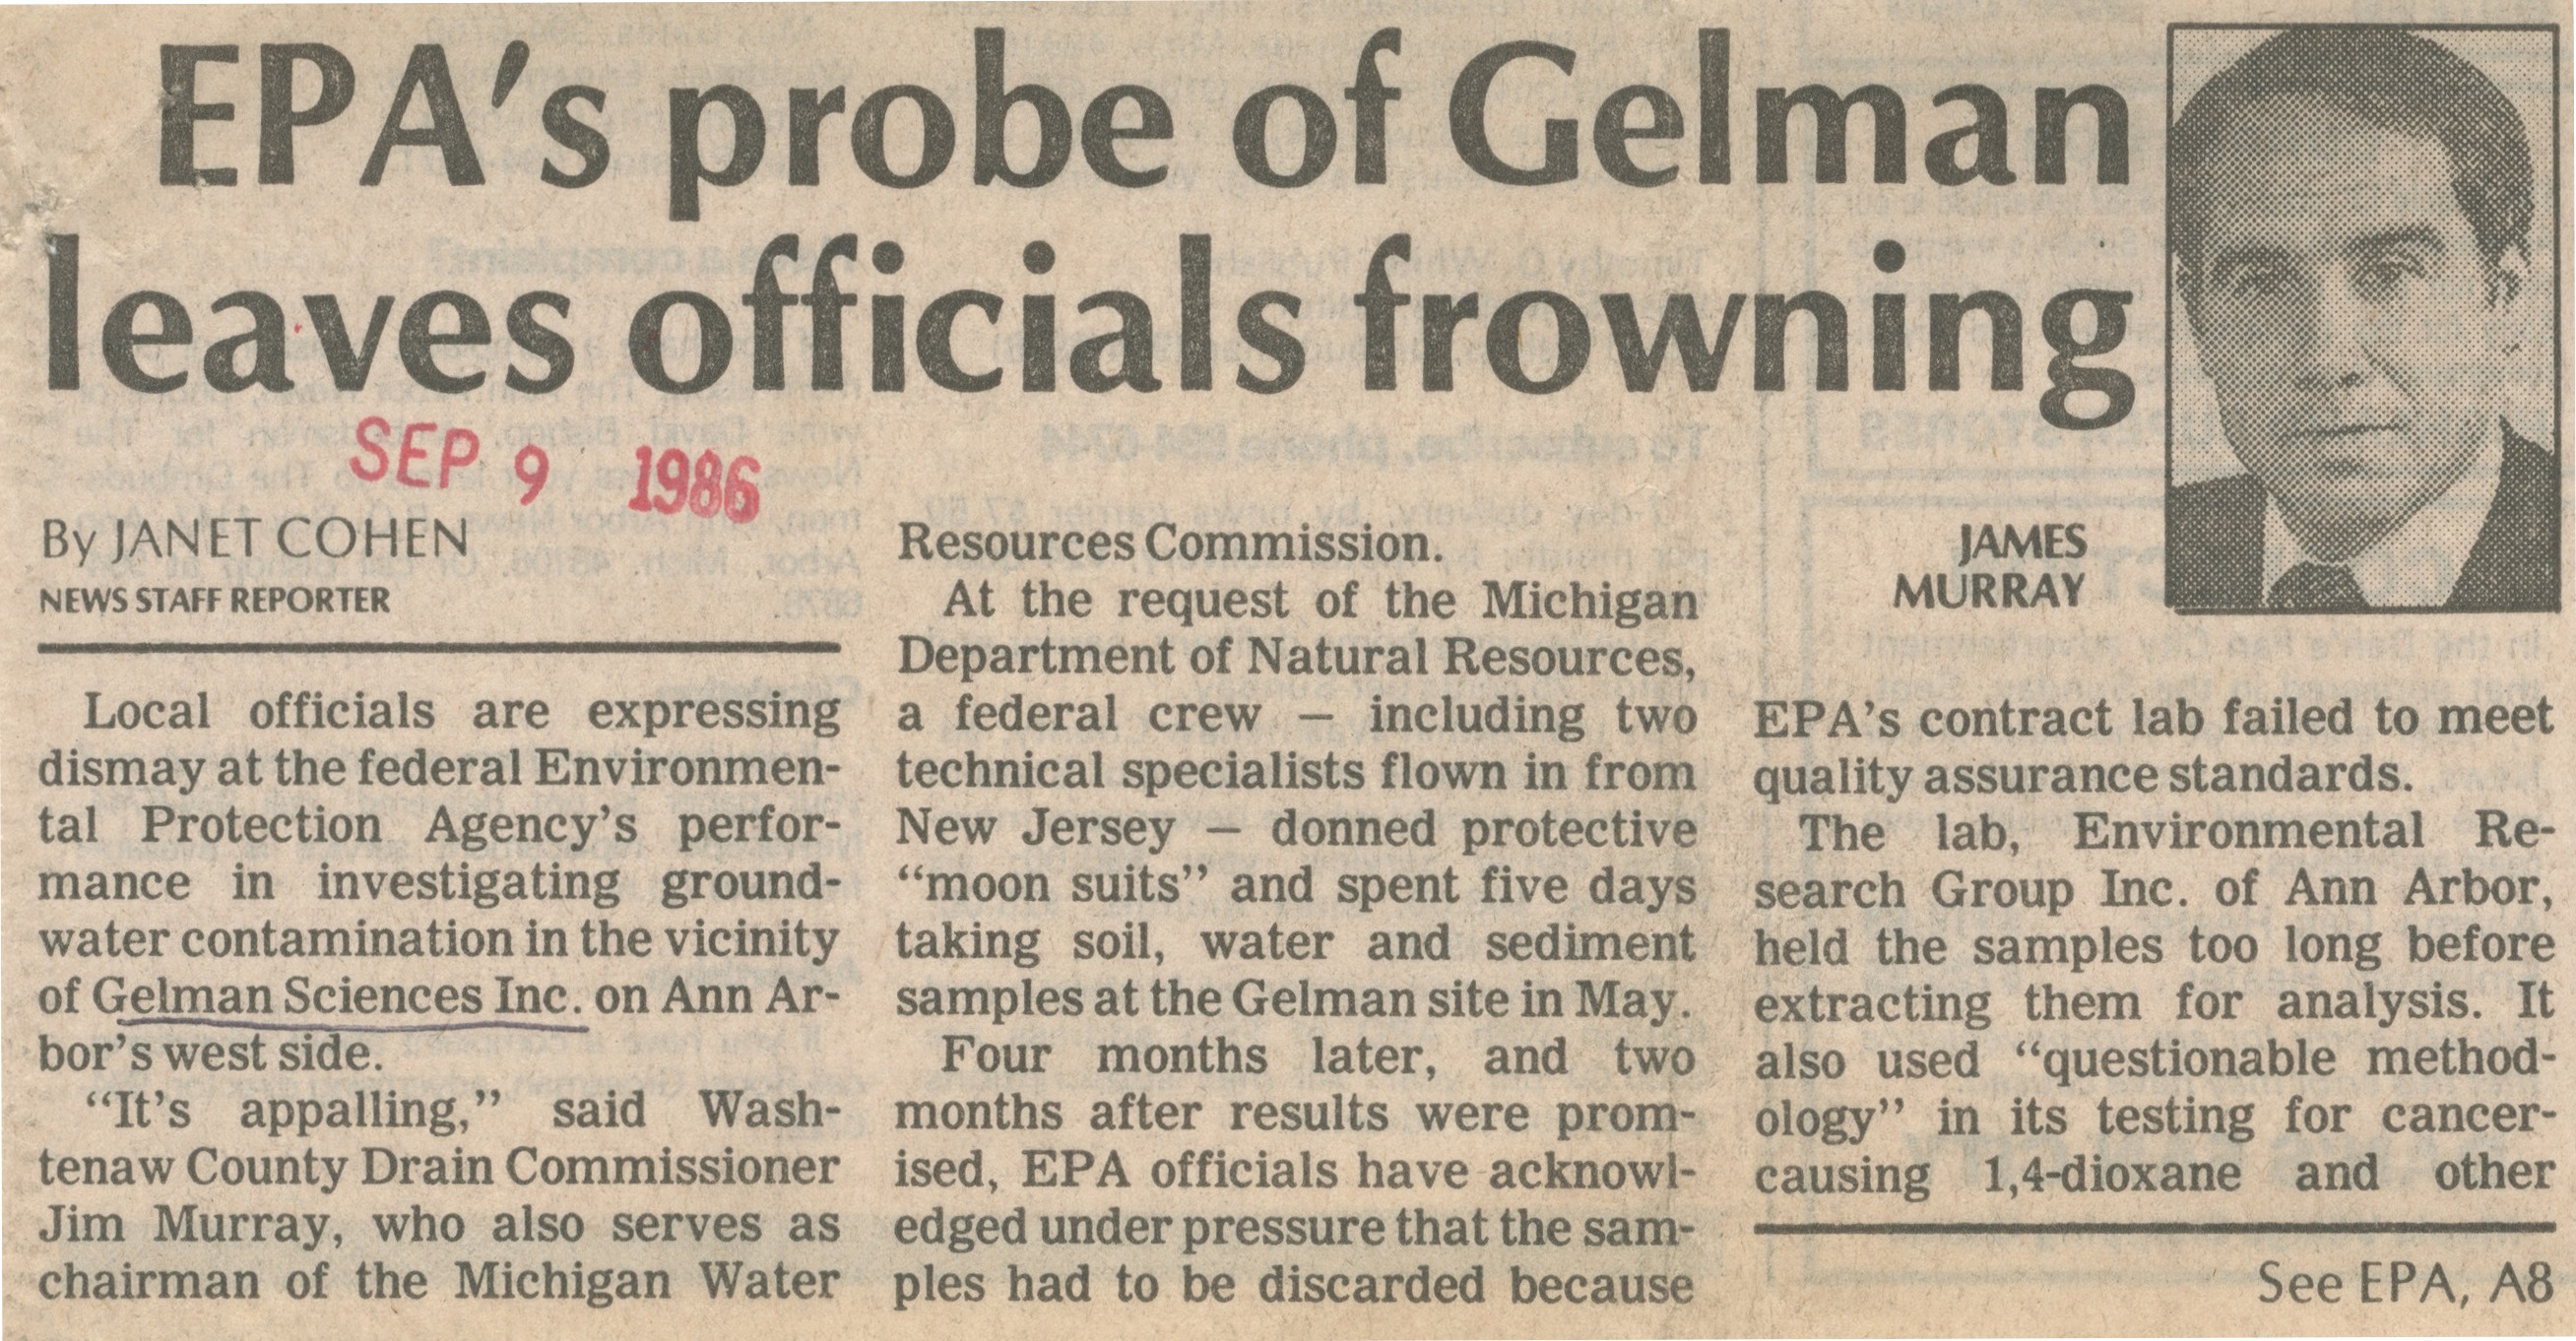 EPA Probe Of Gelman Leaves Officials Frowning image